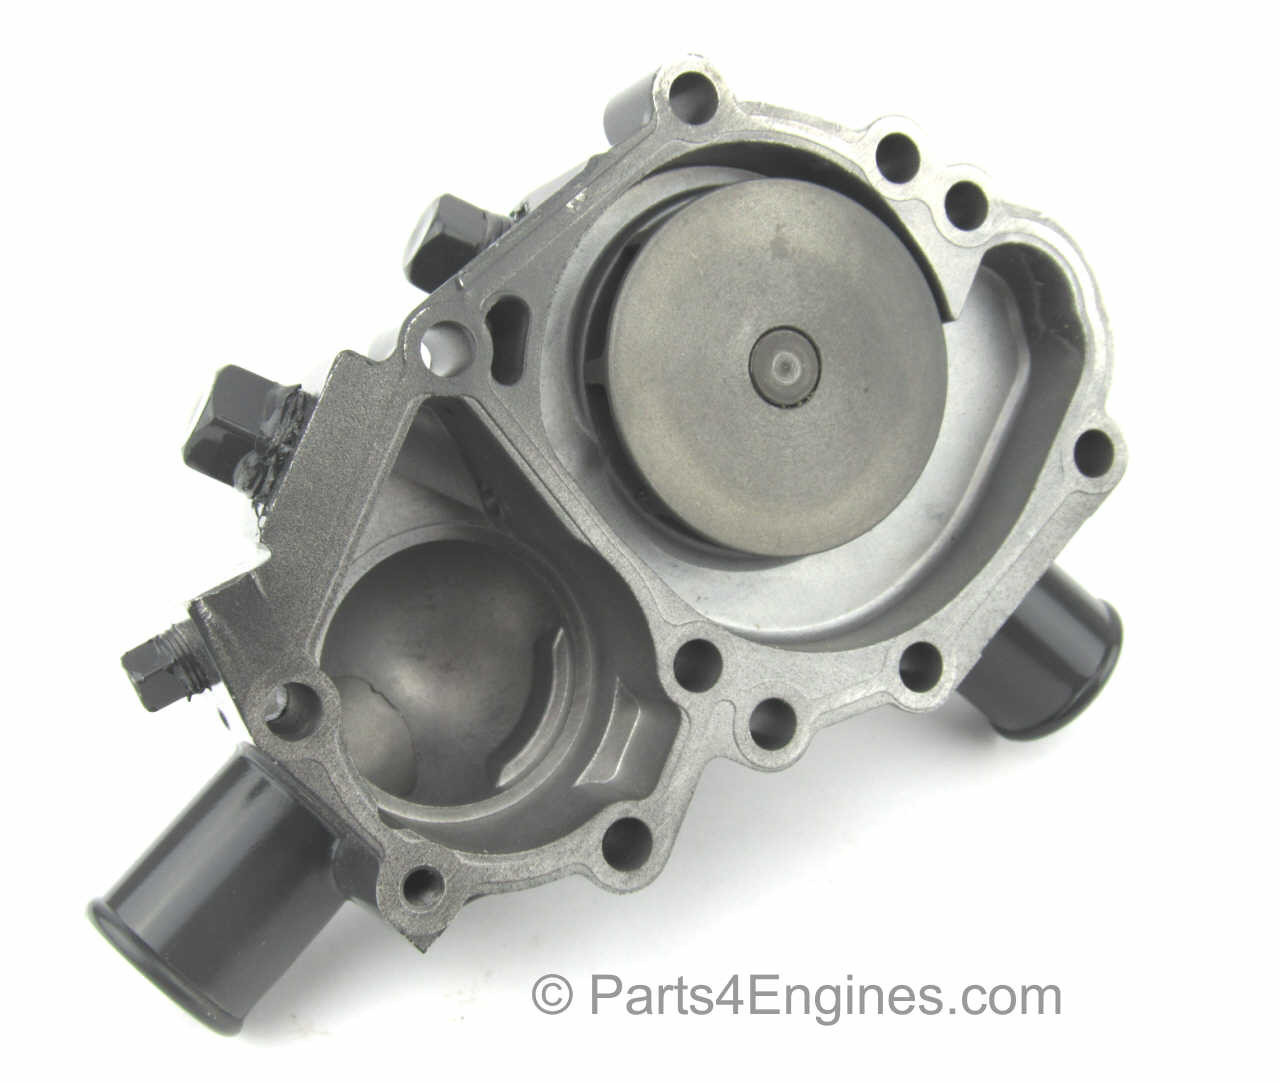 Perkins M25, M30, KC & KD Engines (rear view) - parts4engines.com